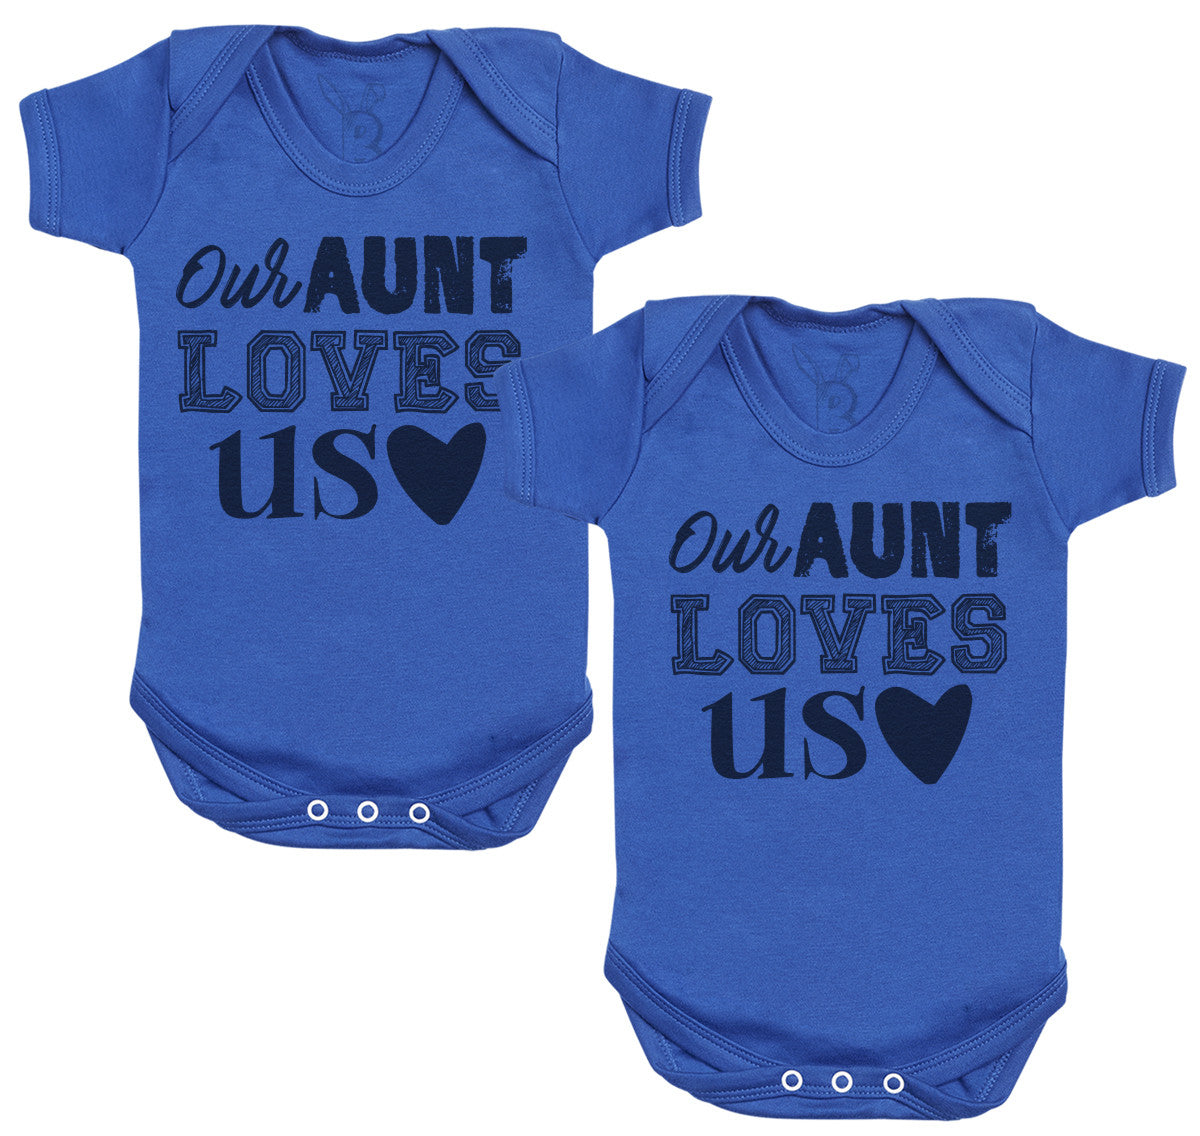 Our Aunt Loves Us Baby Bodysuit - Baby Gift Twin Set